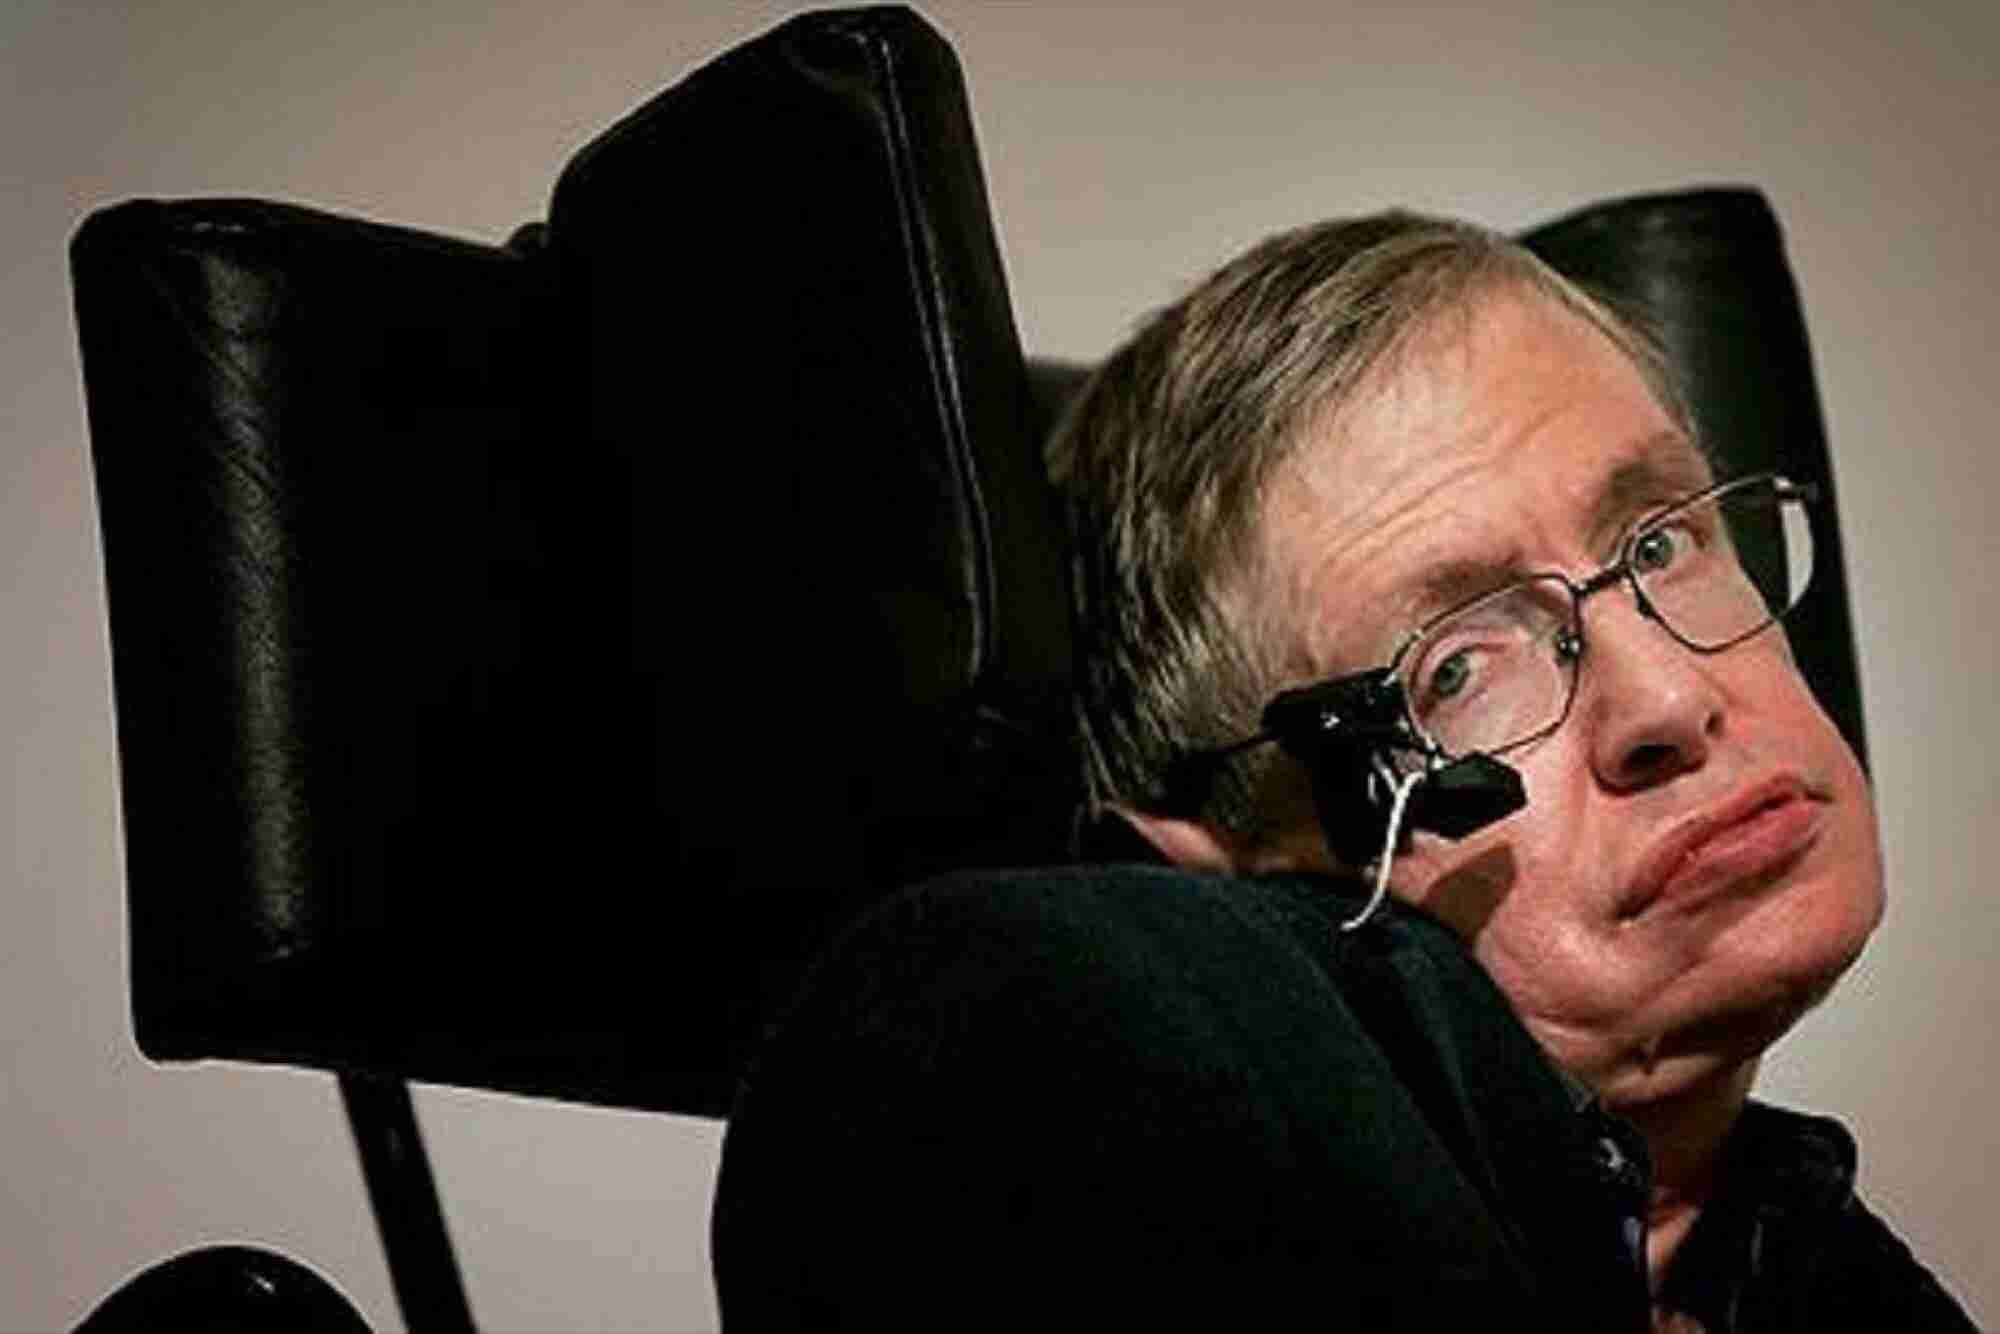 Stephen Hawking: The Man Behind The Theory of Everything